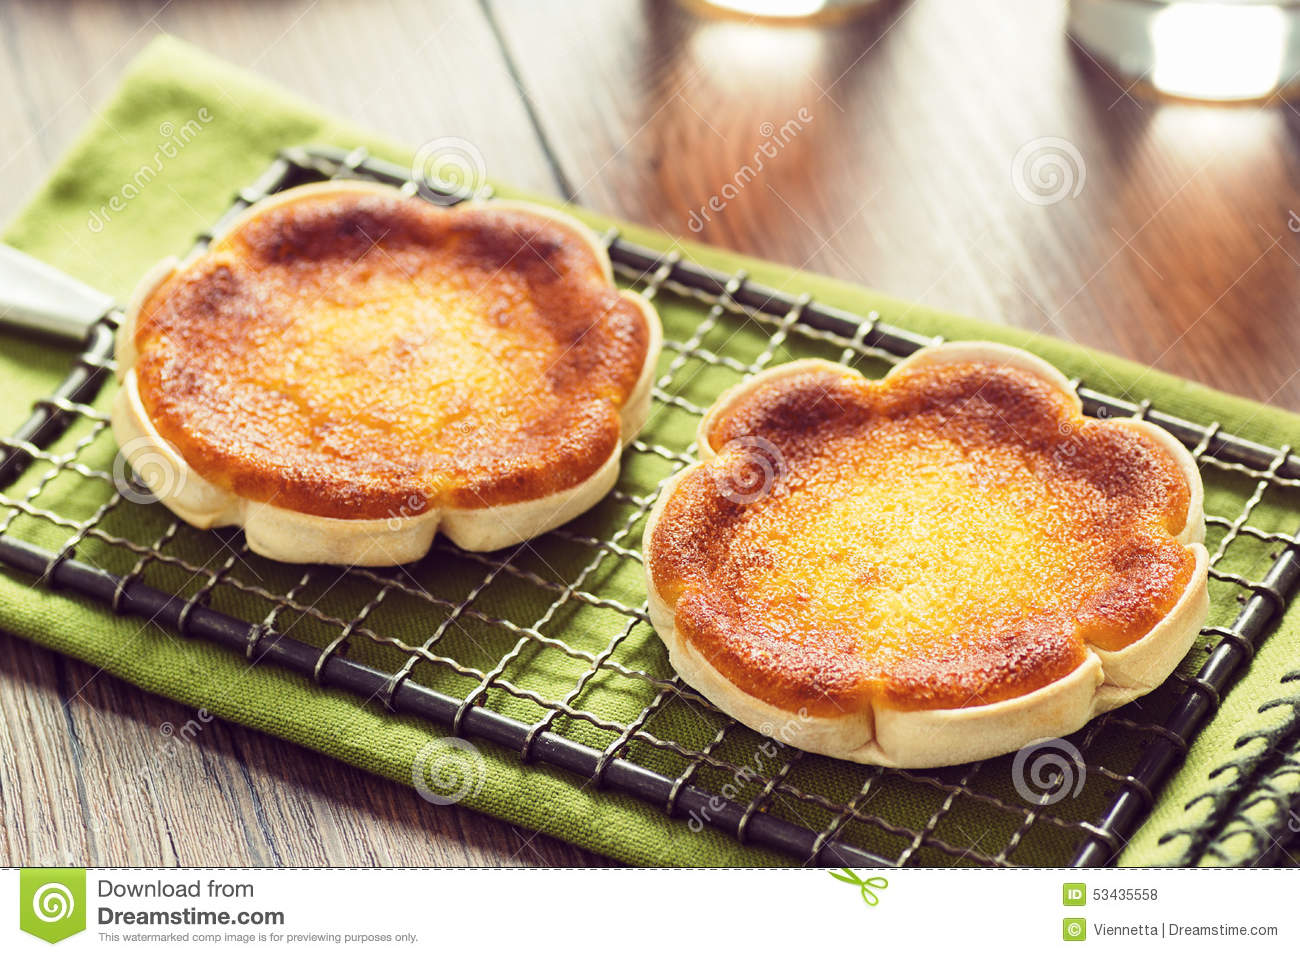 Queijadinhas, Or Portuguese Cheese Cakes Stock Photo - Image